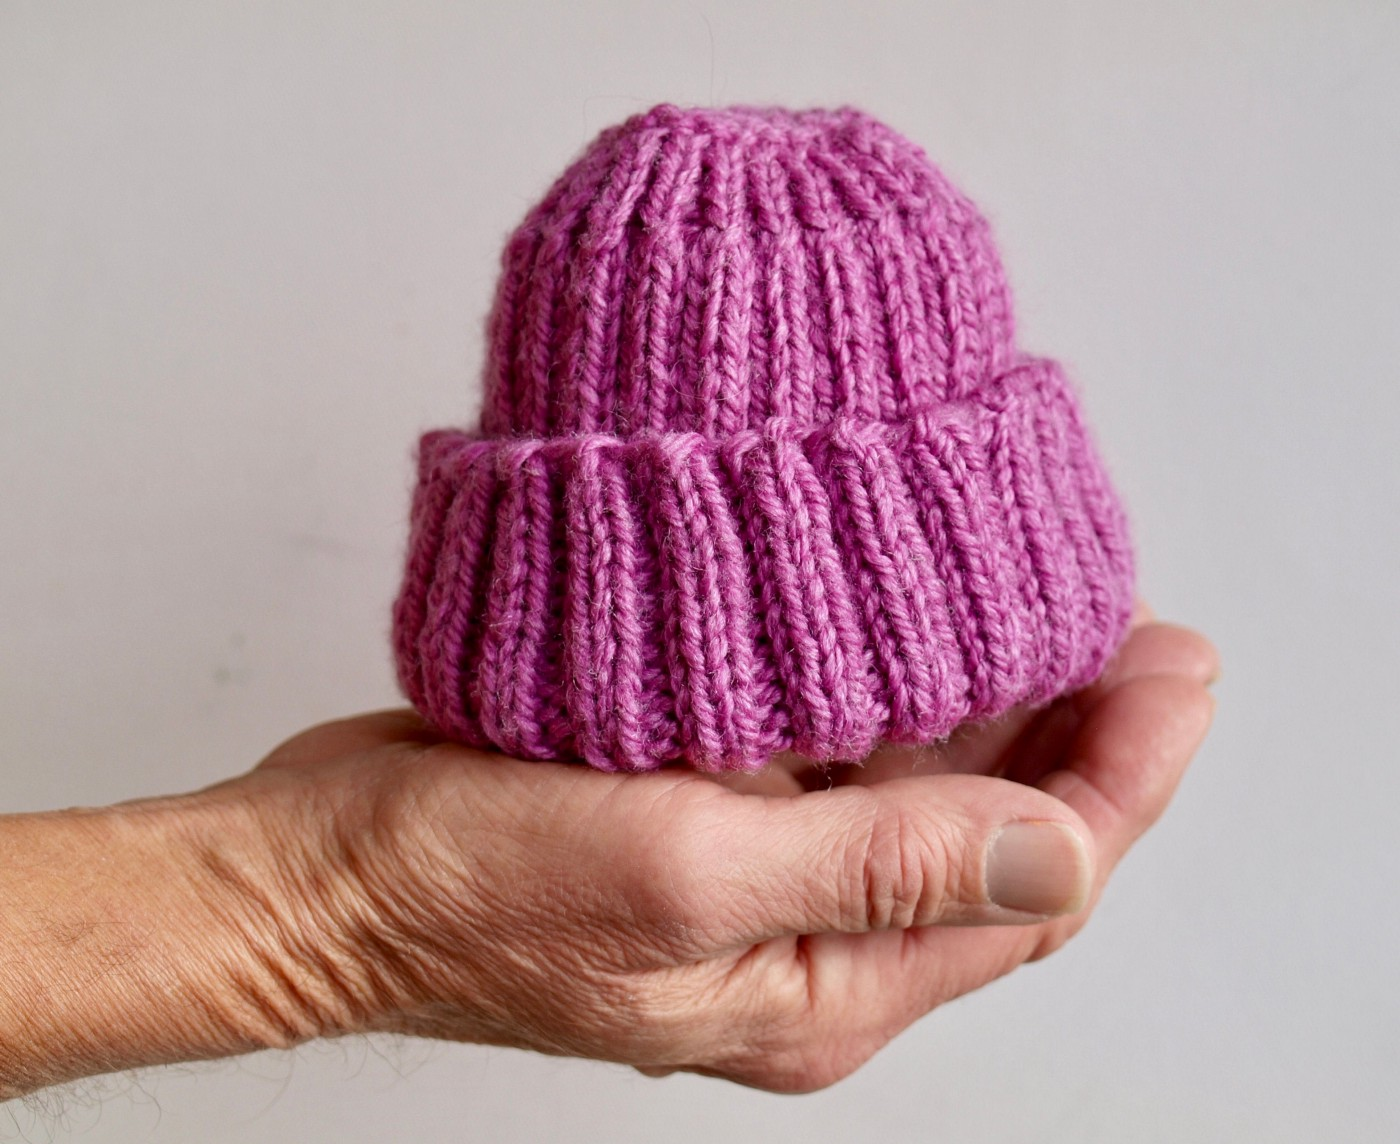 Man holding a woolen cap for babies, don't ask someone when they are having a baby